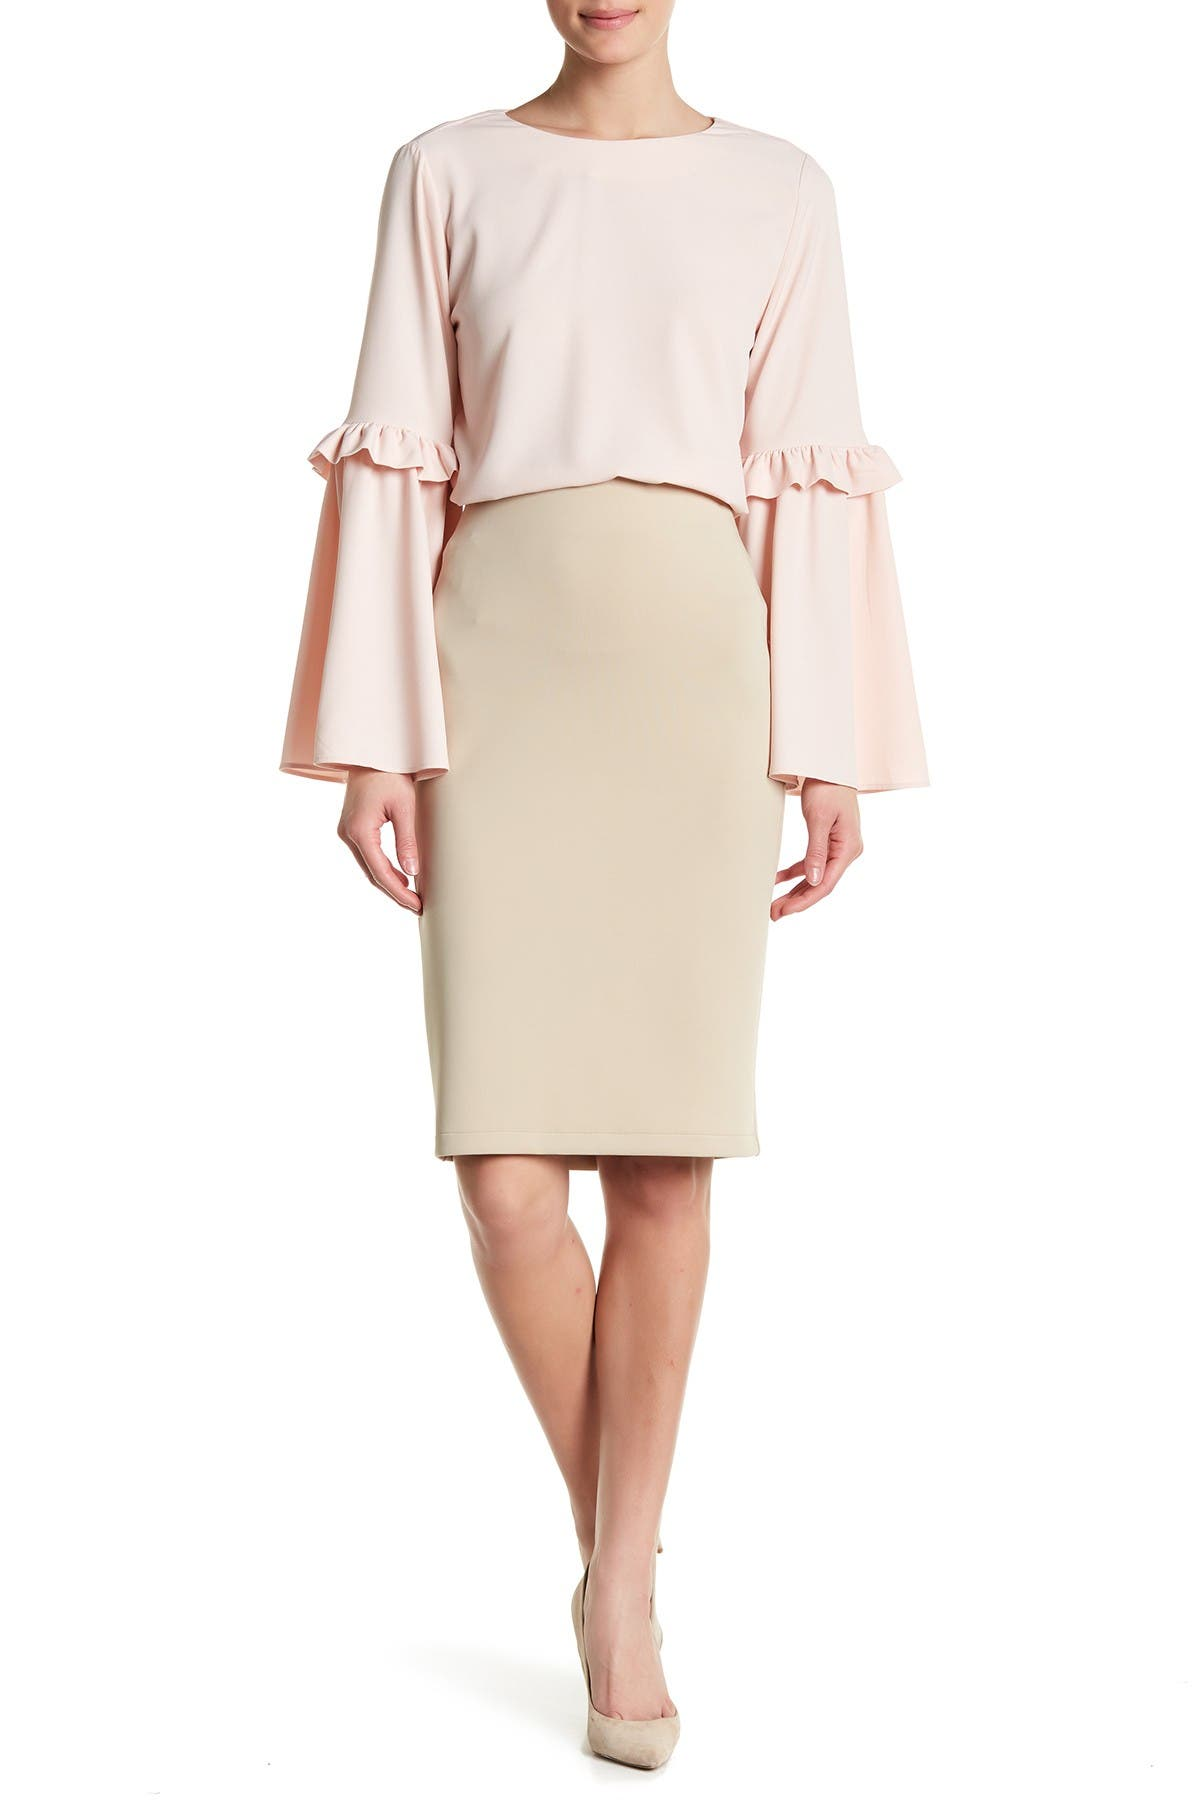 Image of Catherine Catherine Malandrino Solid Pencil Skirt